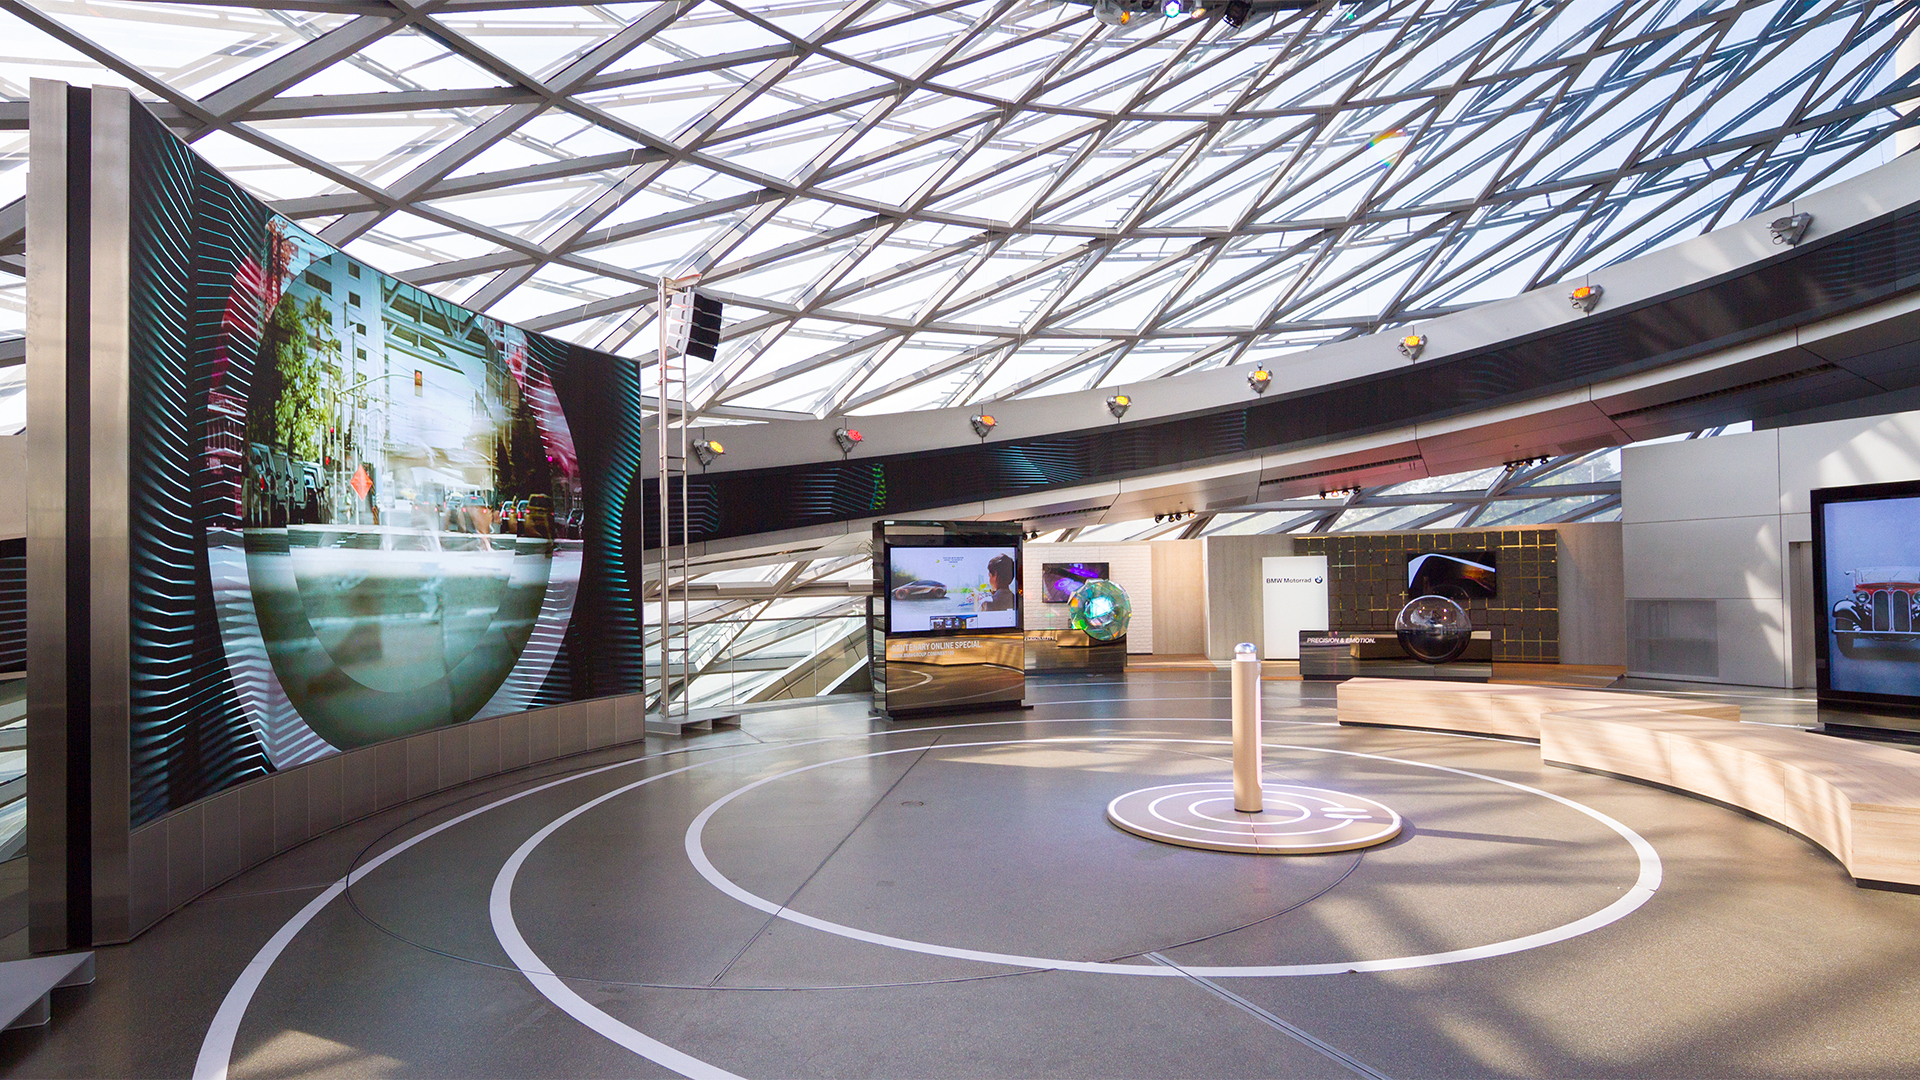 BMW goes bold and bright with Barco modular LED displays